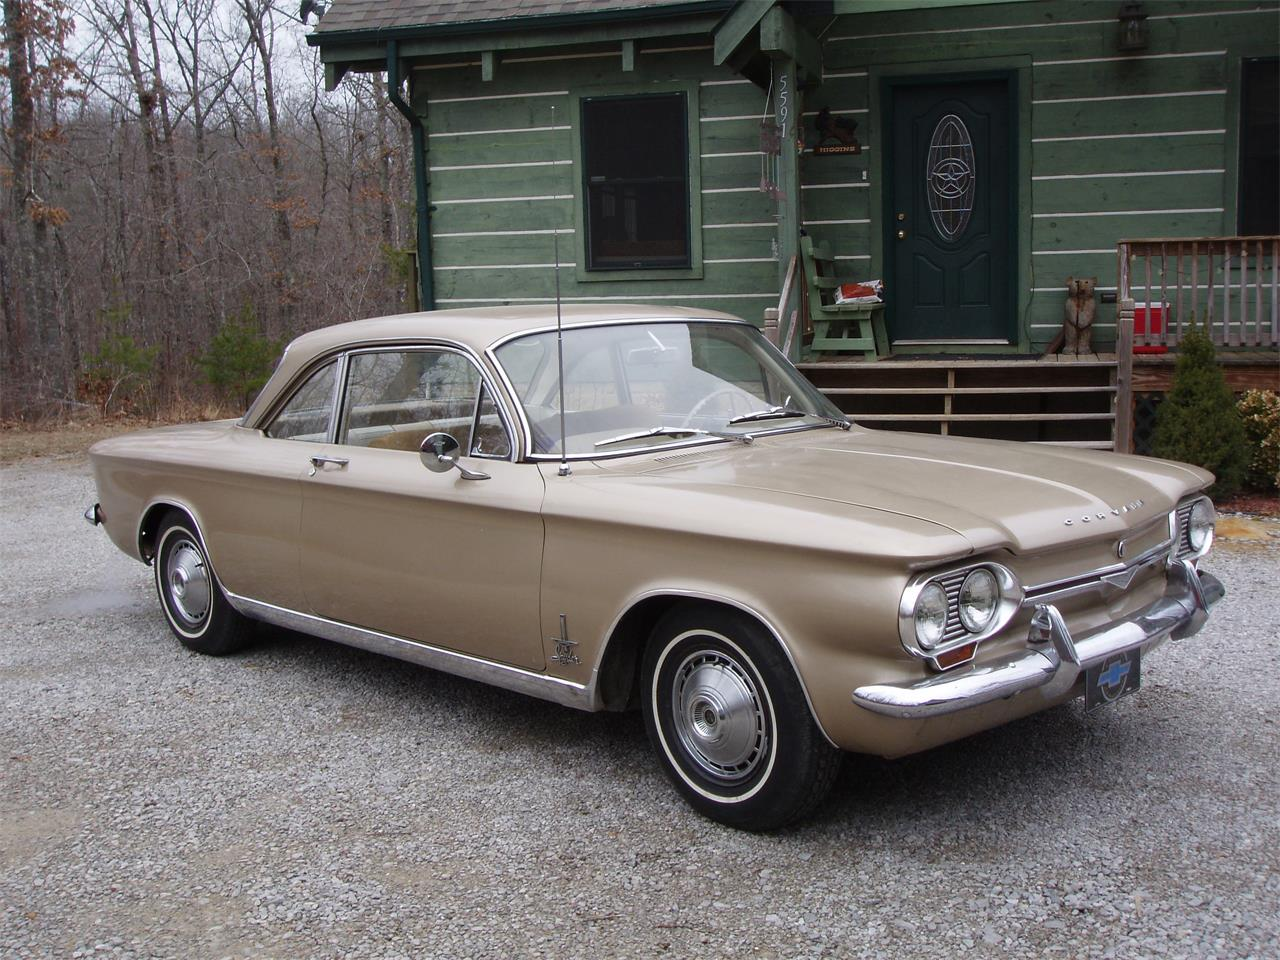 Large Picture Of 64 Chevrolet Corvair Monza Located In Tennessee 8 900 00 Nf0t